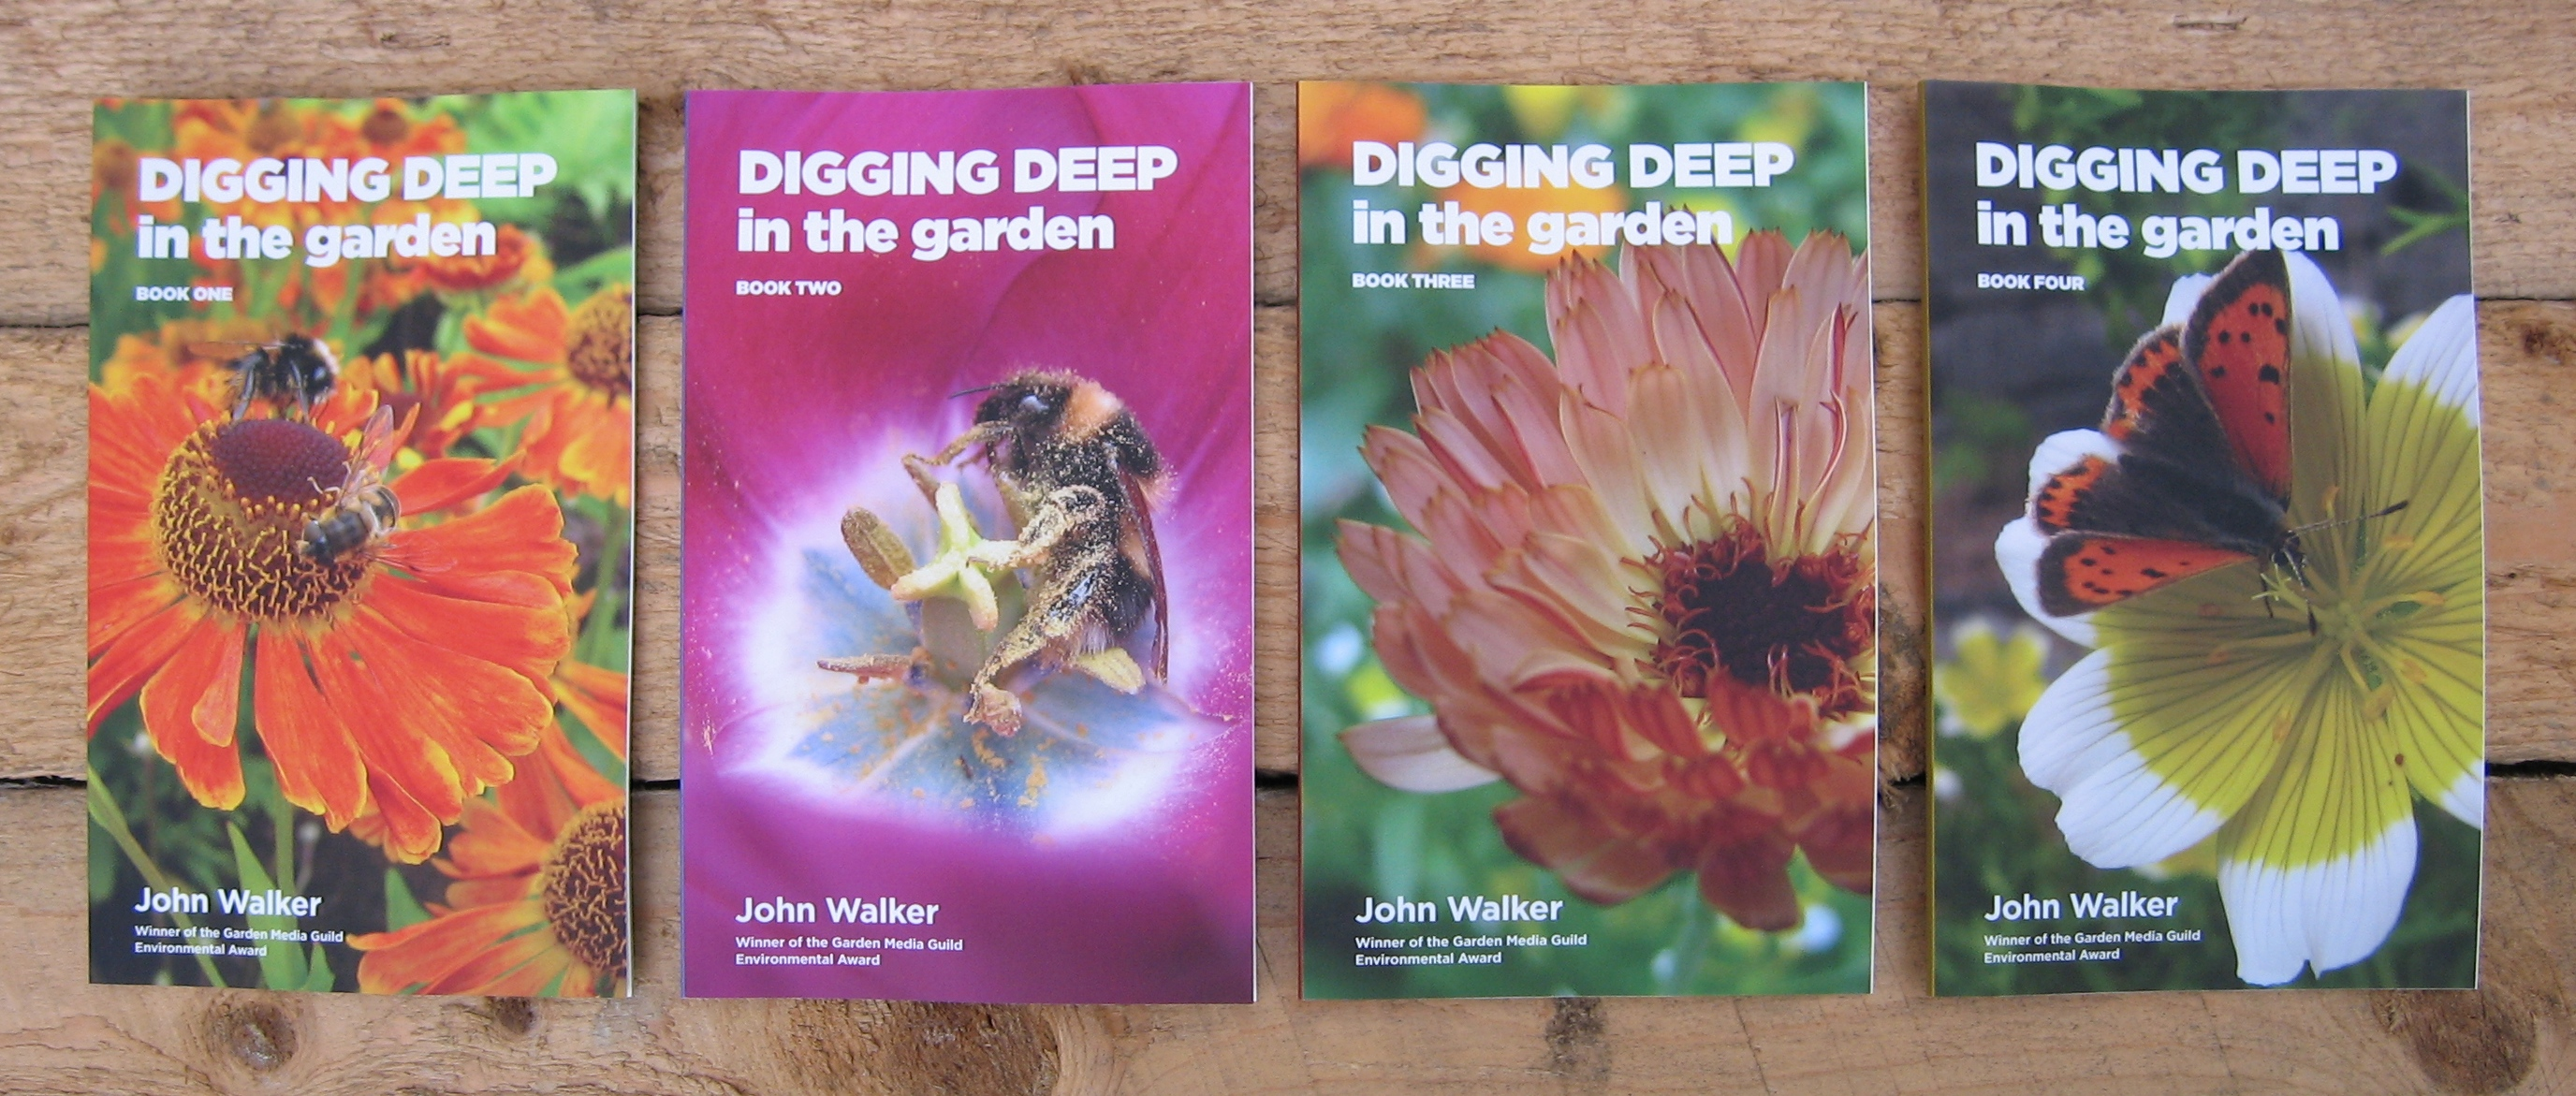 digging-deep-in-the-garden-book-one-two-three-four-john-walker